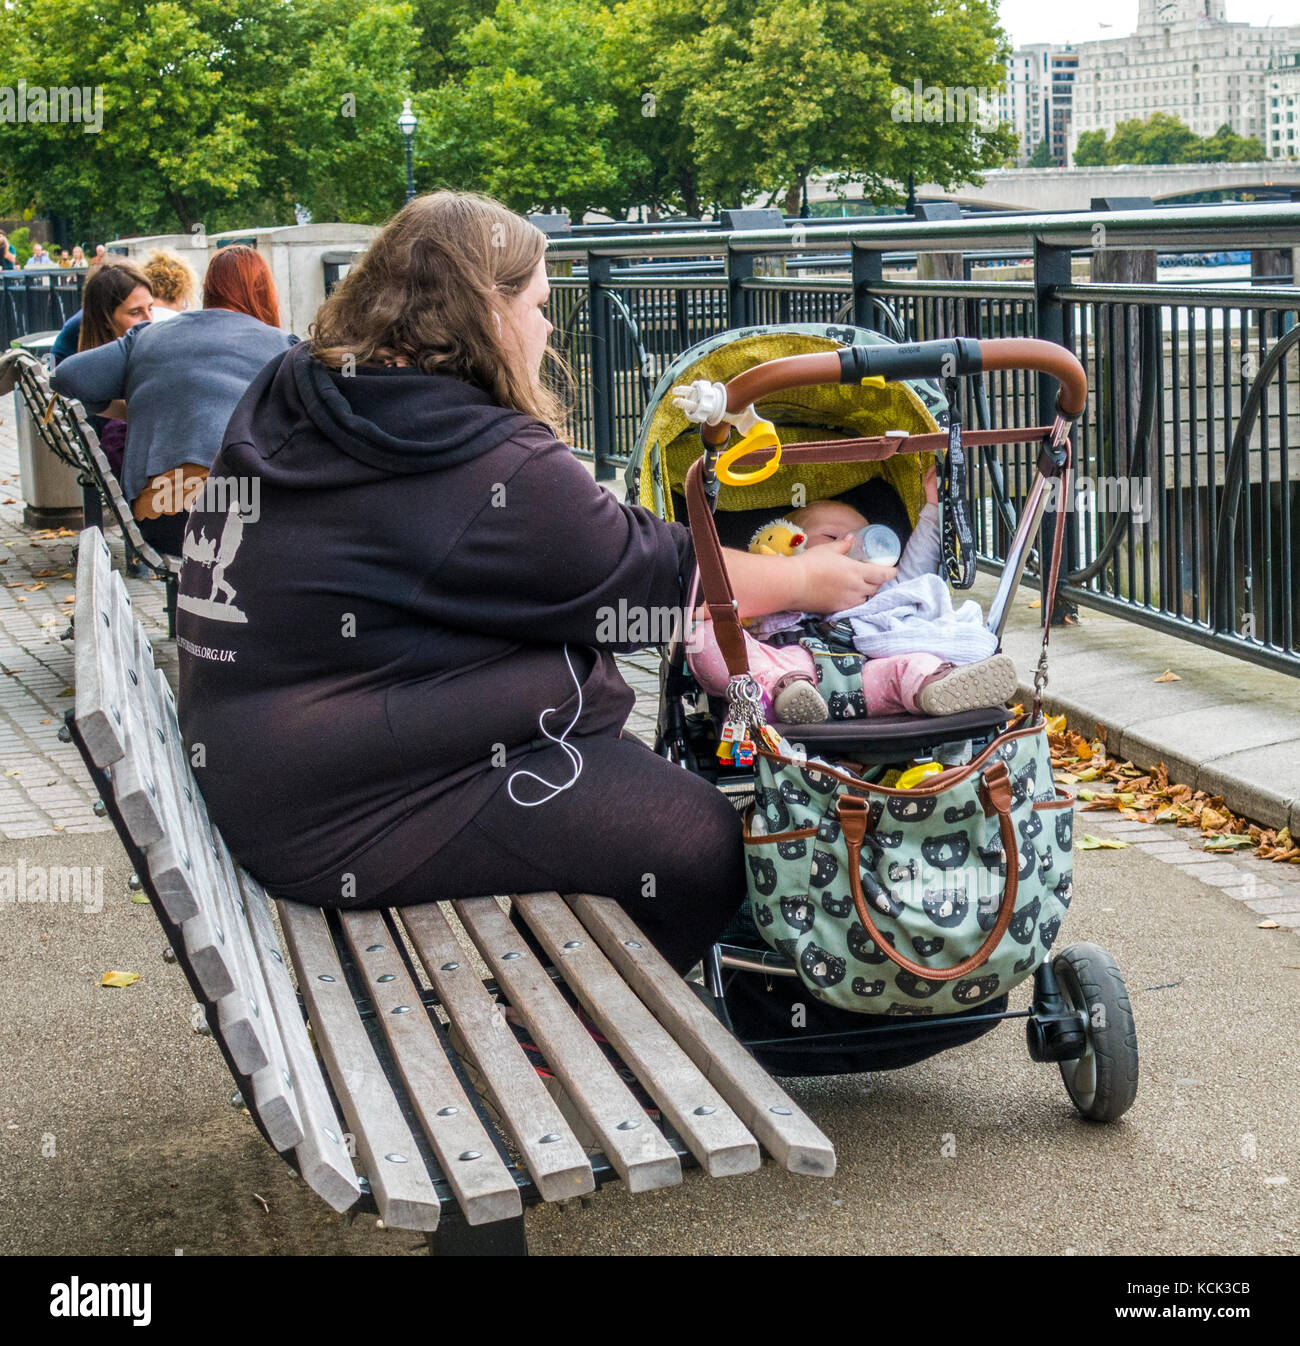 Overweight, single parent, teenage mother, sitting on a wooden bench, bottle feeding milk to her baby in a pushchair, - Stock Image